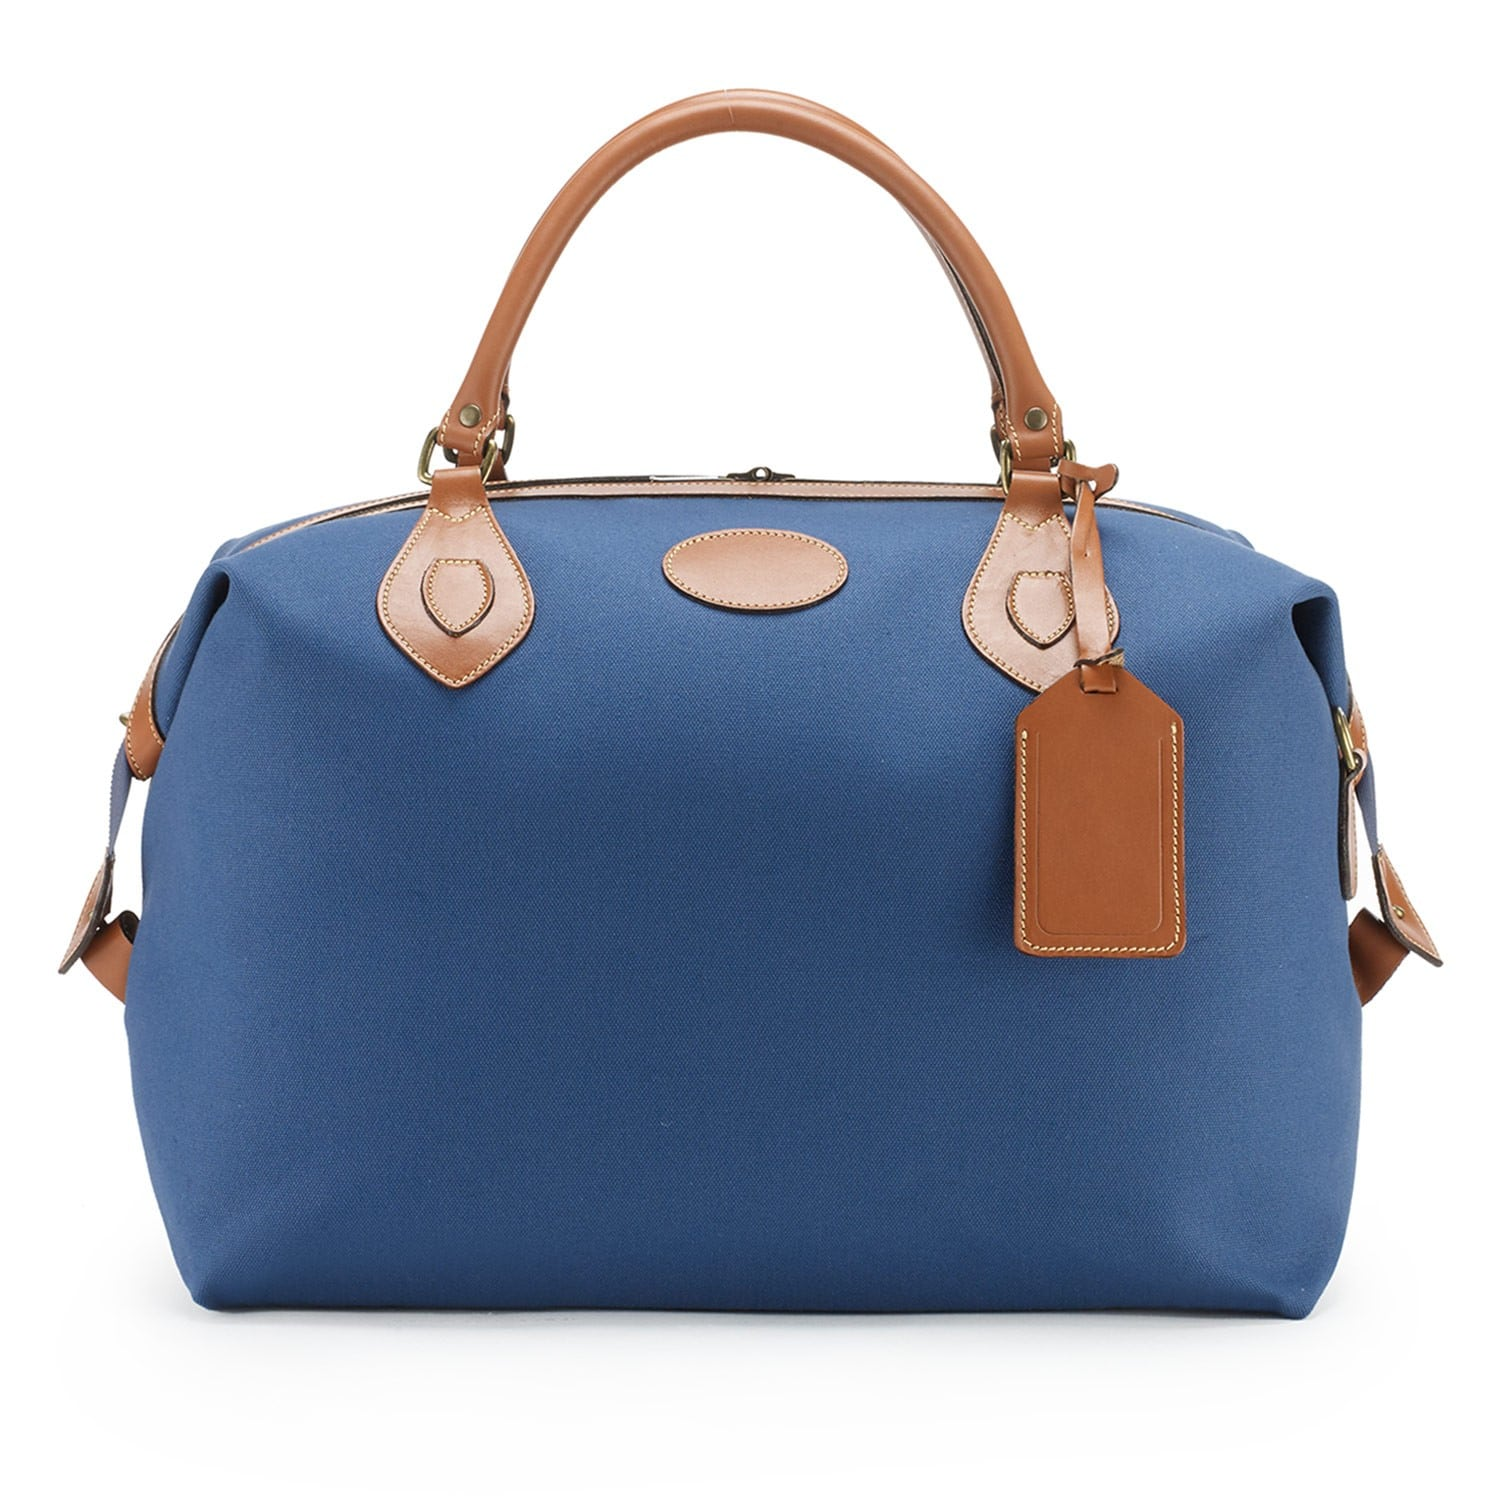 Tusting Explorer Tasche, medium, denim blue 1